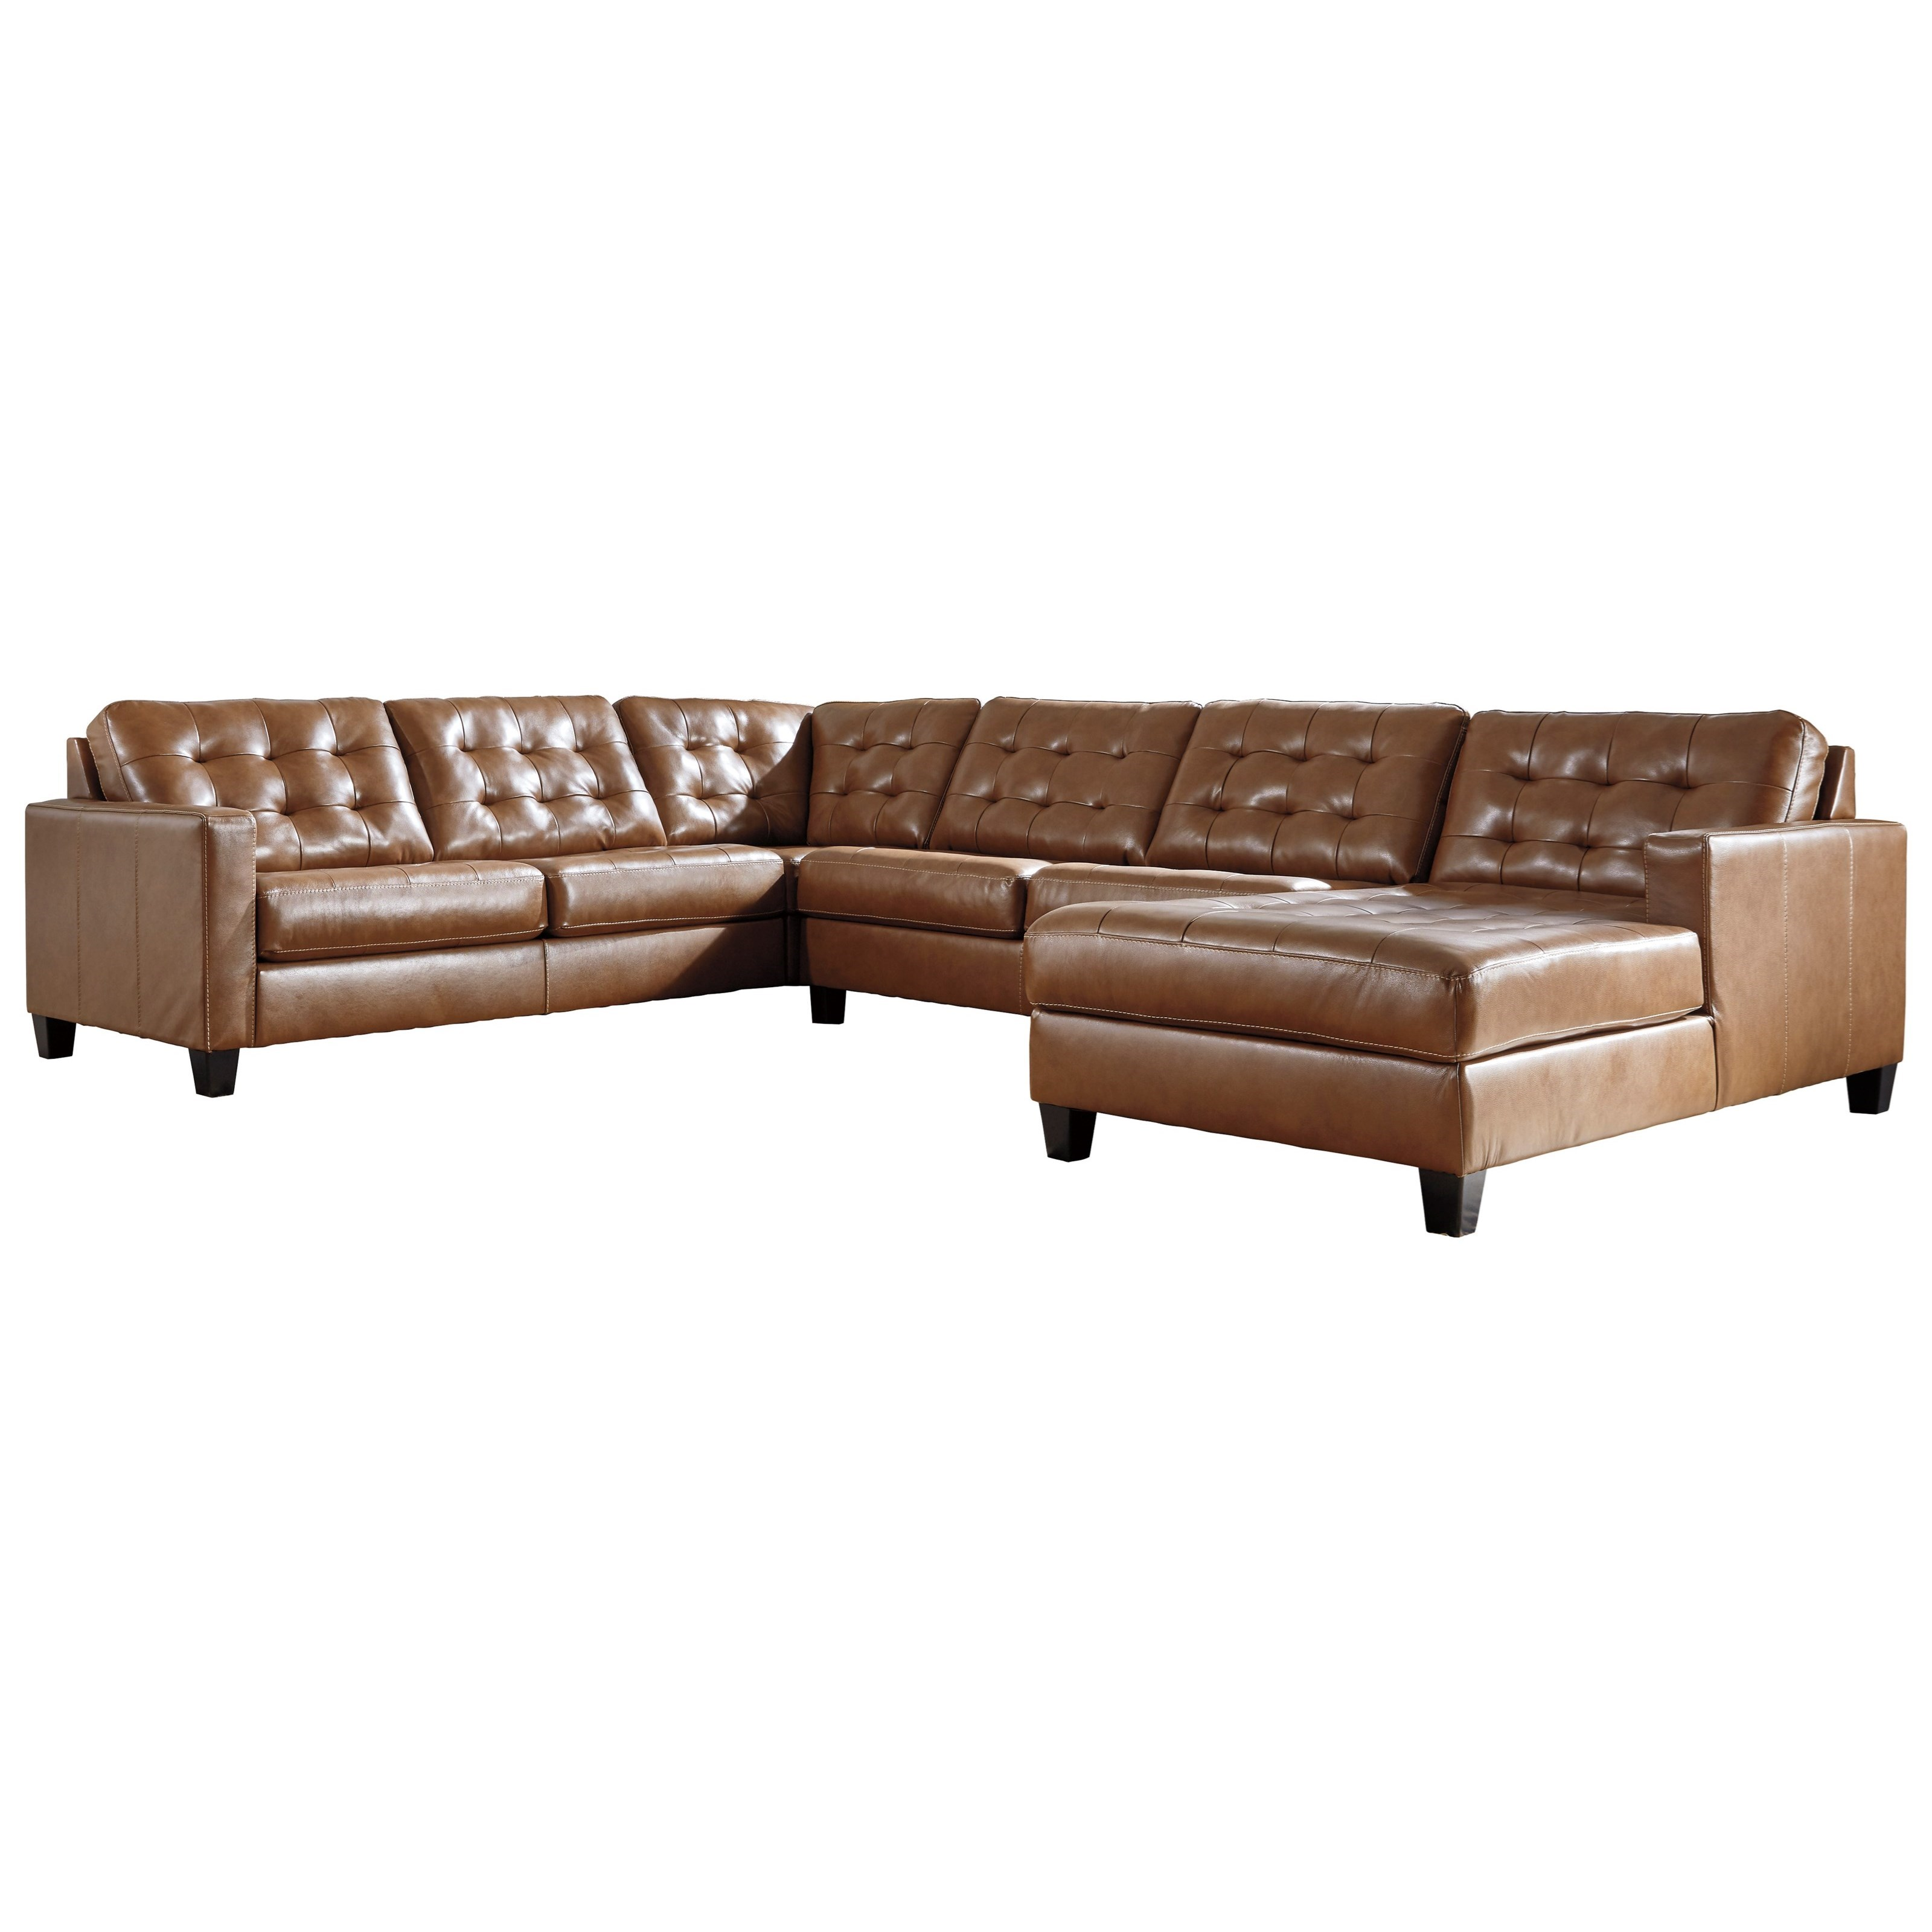 Baskove 4-Piece Sectional by Signature Design by Ashley at Household Furniture